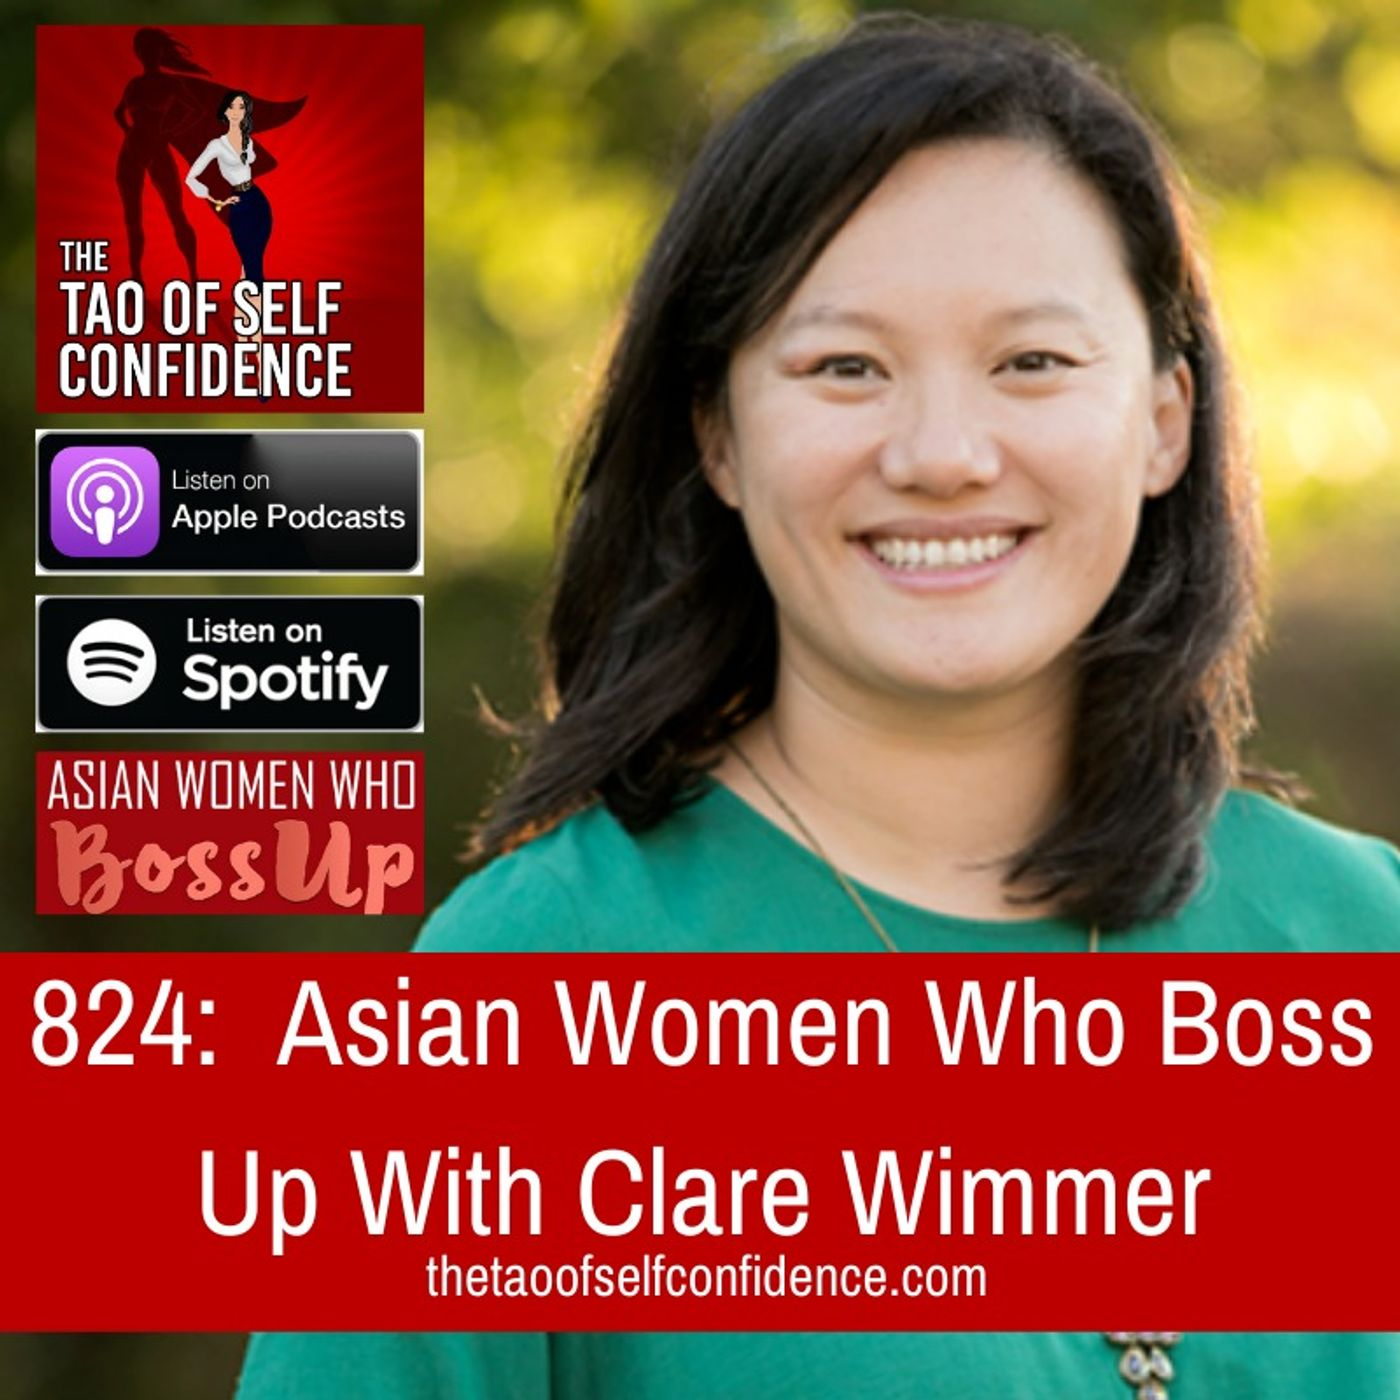 824:  Asian Women Who Boss Up With Clare Wimmer